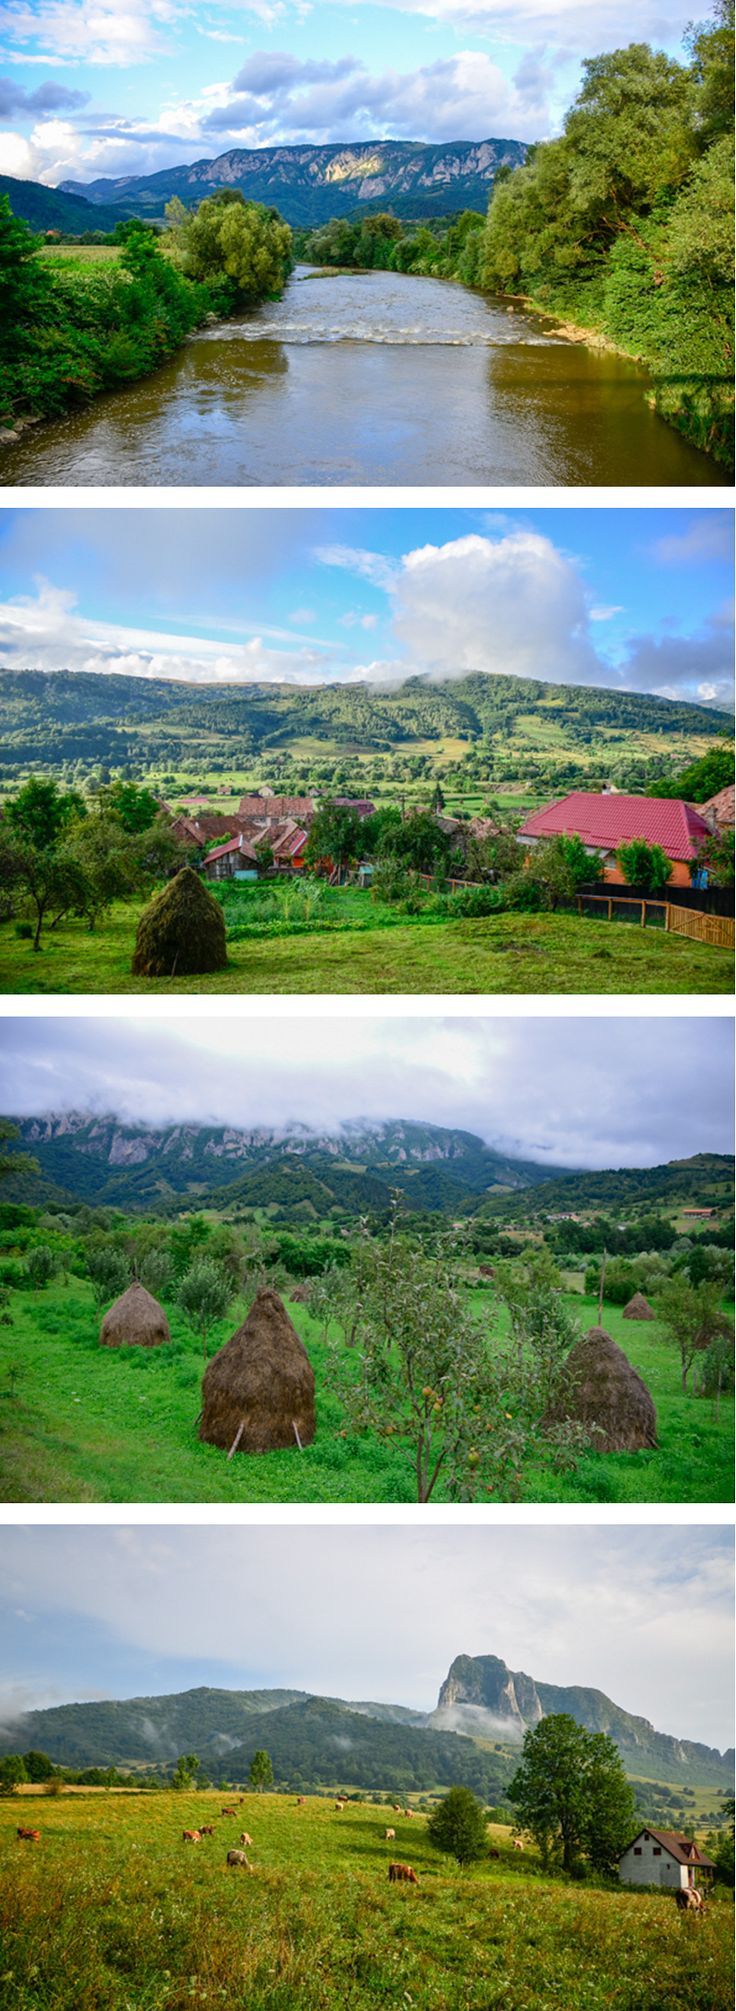 Imagine staying in a rural pension with a Romanian family in these stunning country landscapes, in Transylvania!